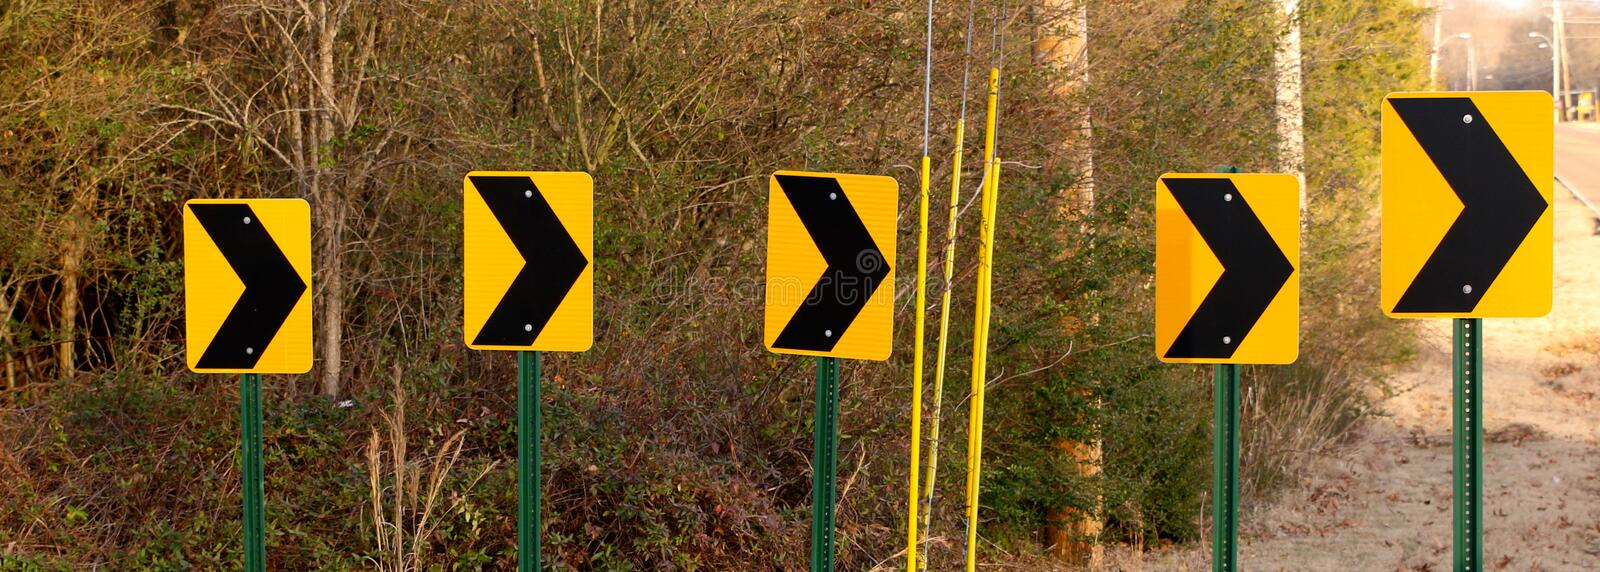 Curves Ahead Street Signs. Street signs warn of a winding curvy bend in the road ahead stock photography